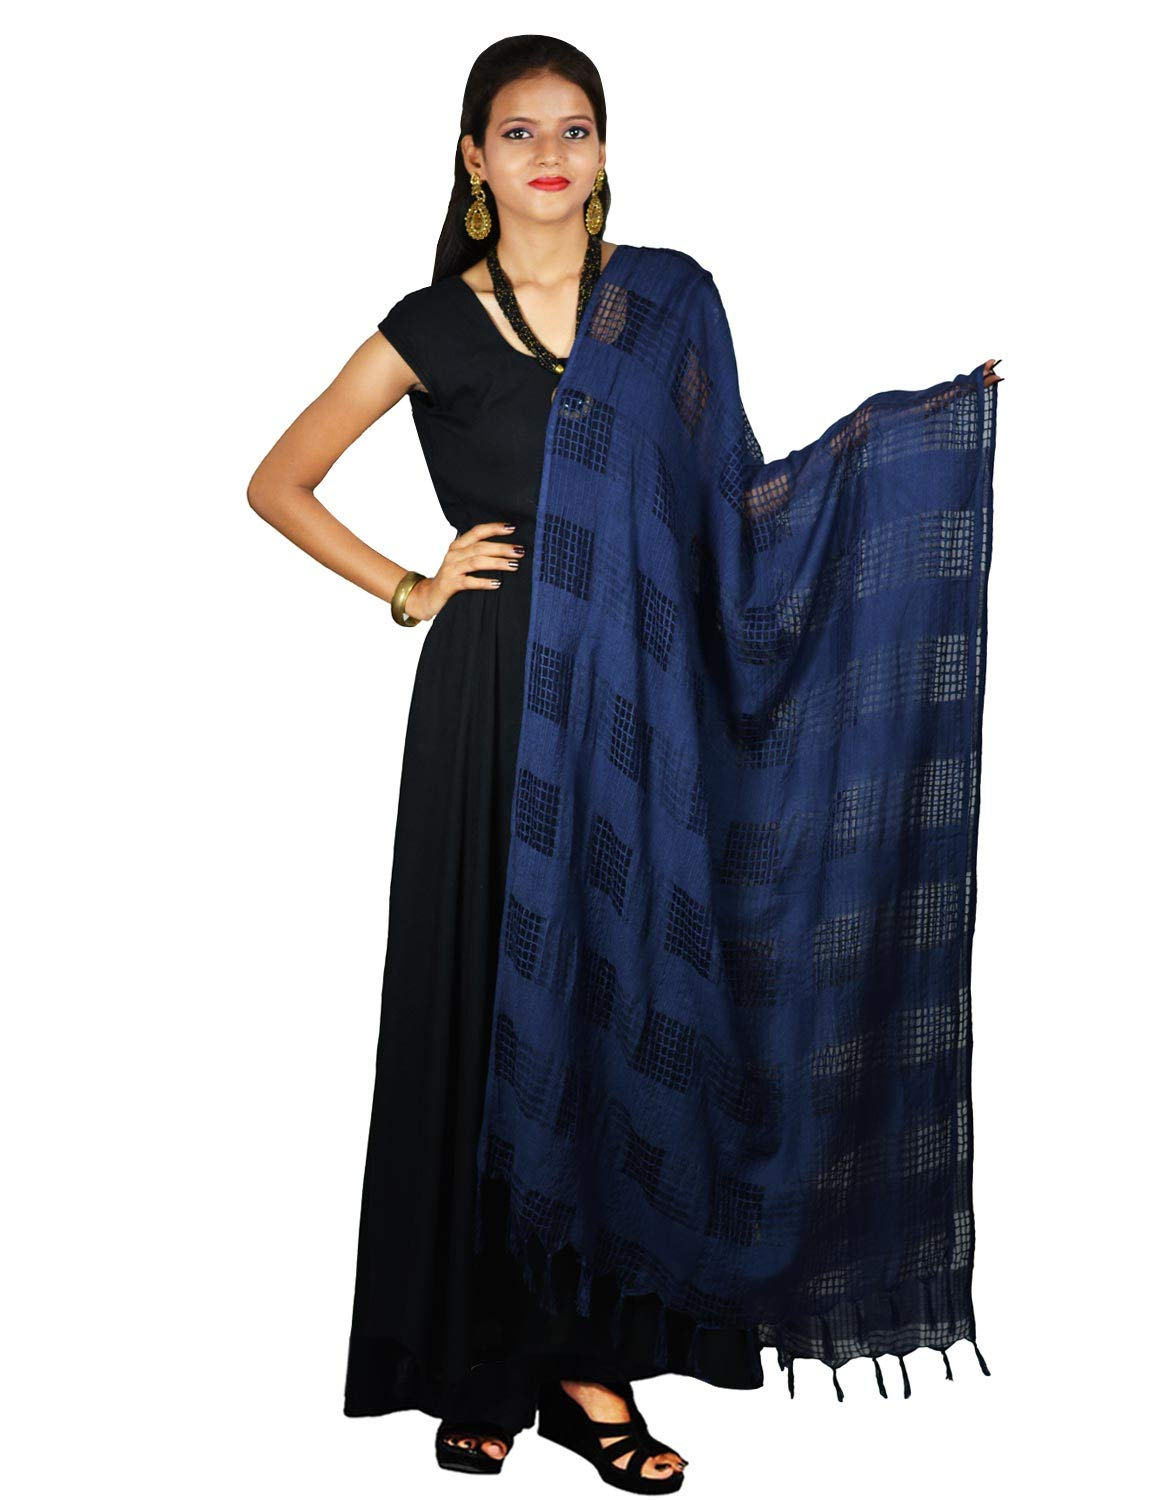 Ethnic Navy Blue Dupatta with Striped Pattern Cotton Viscose Chunni Stole Scarf Wrap For Women